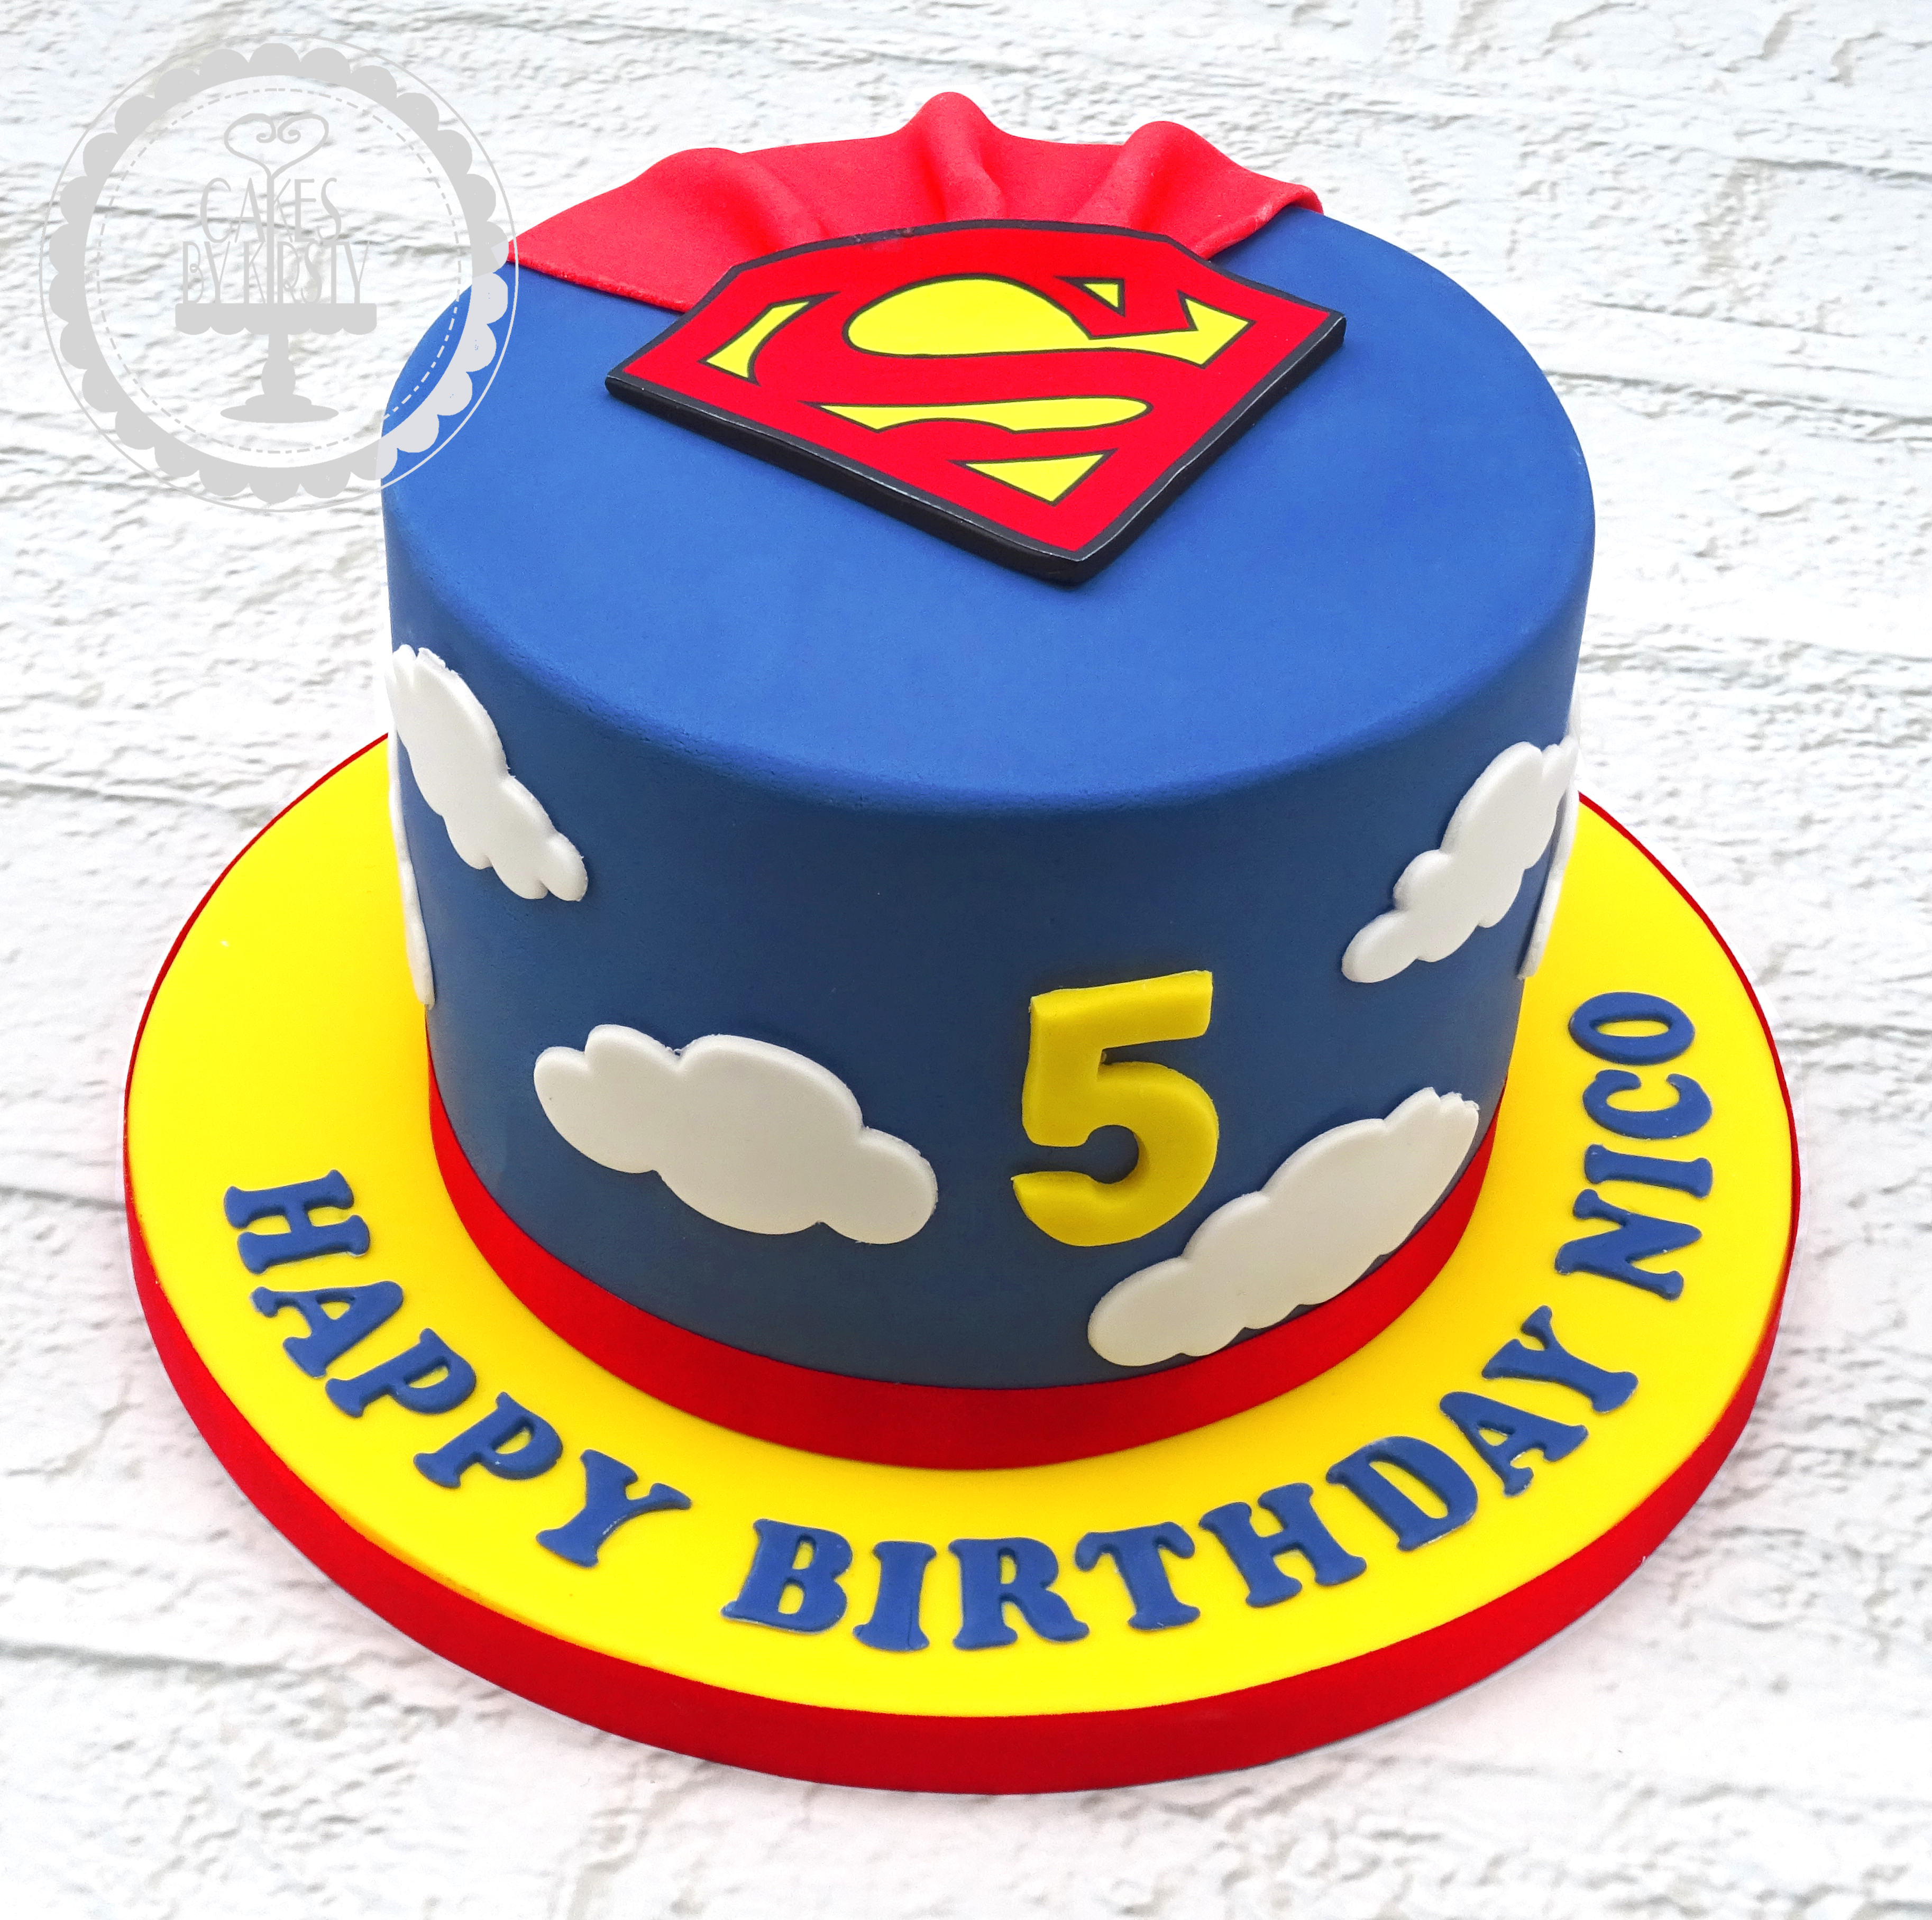 Sensational Cakes By Kirsty Childrens Cakes Funny Birthday Cards Online Bapapcheapnameinfo